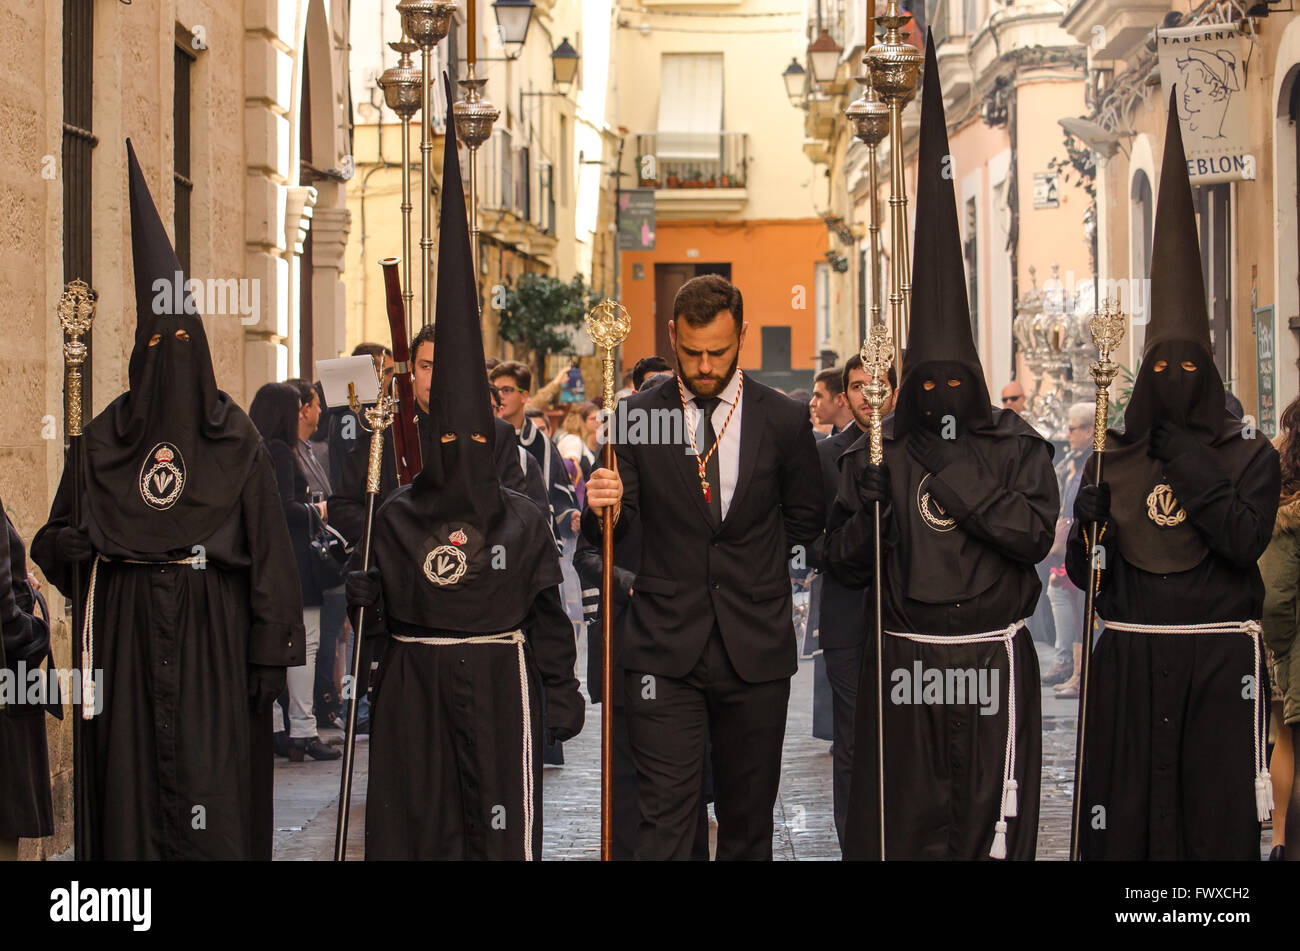 Hooded Penitents heads bowed during Semana Santa processions Cadiz City 2016 - Stock Image